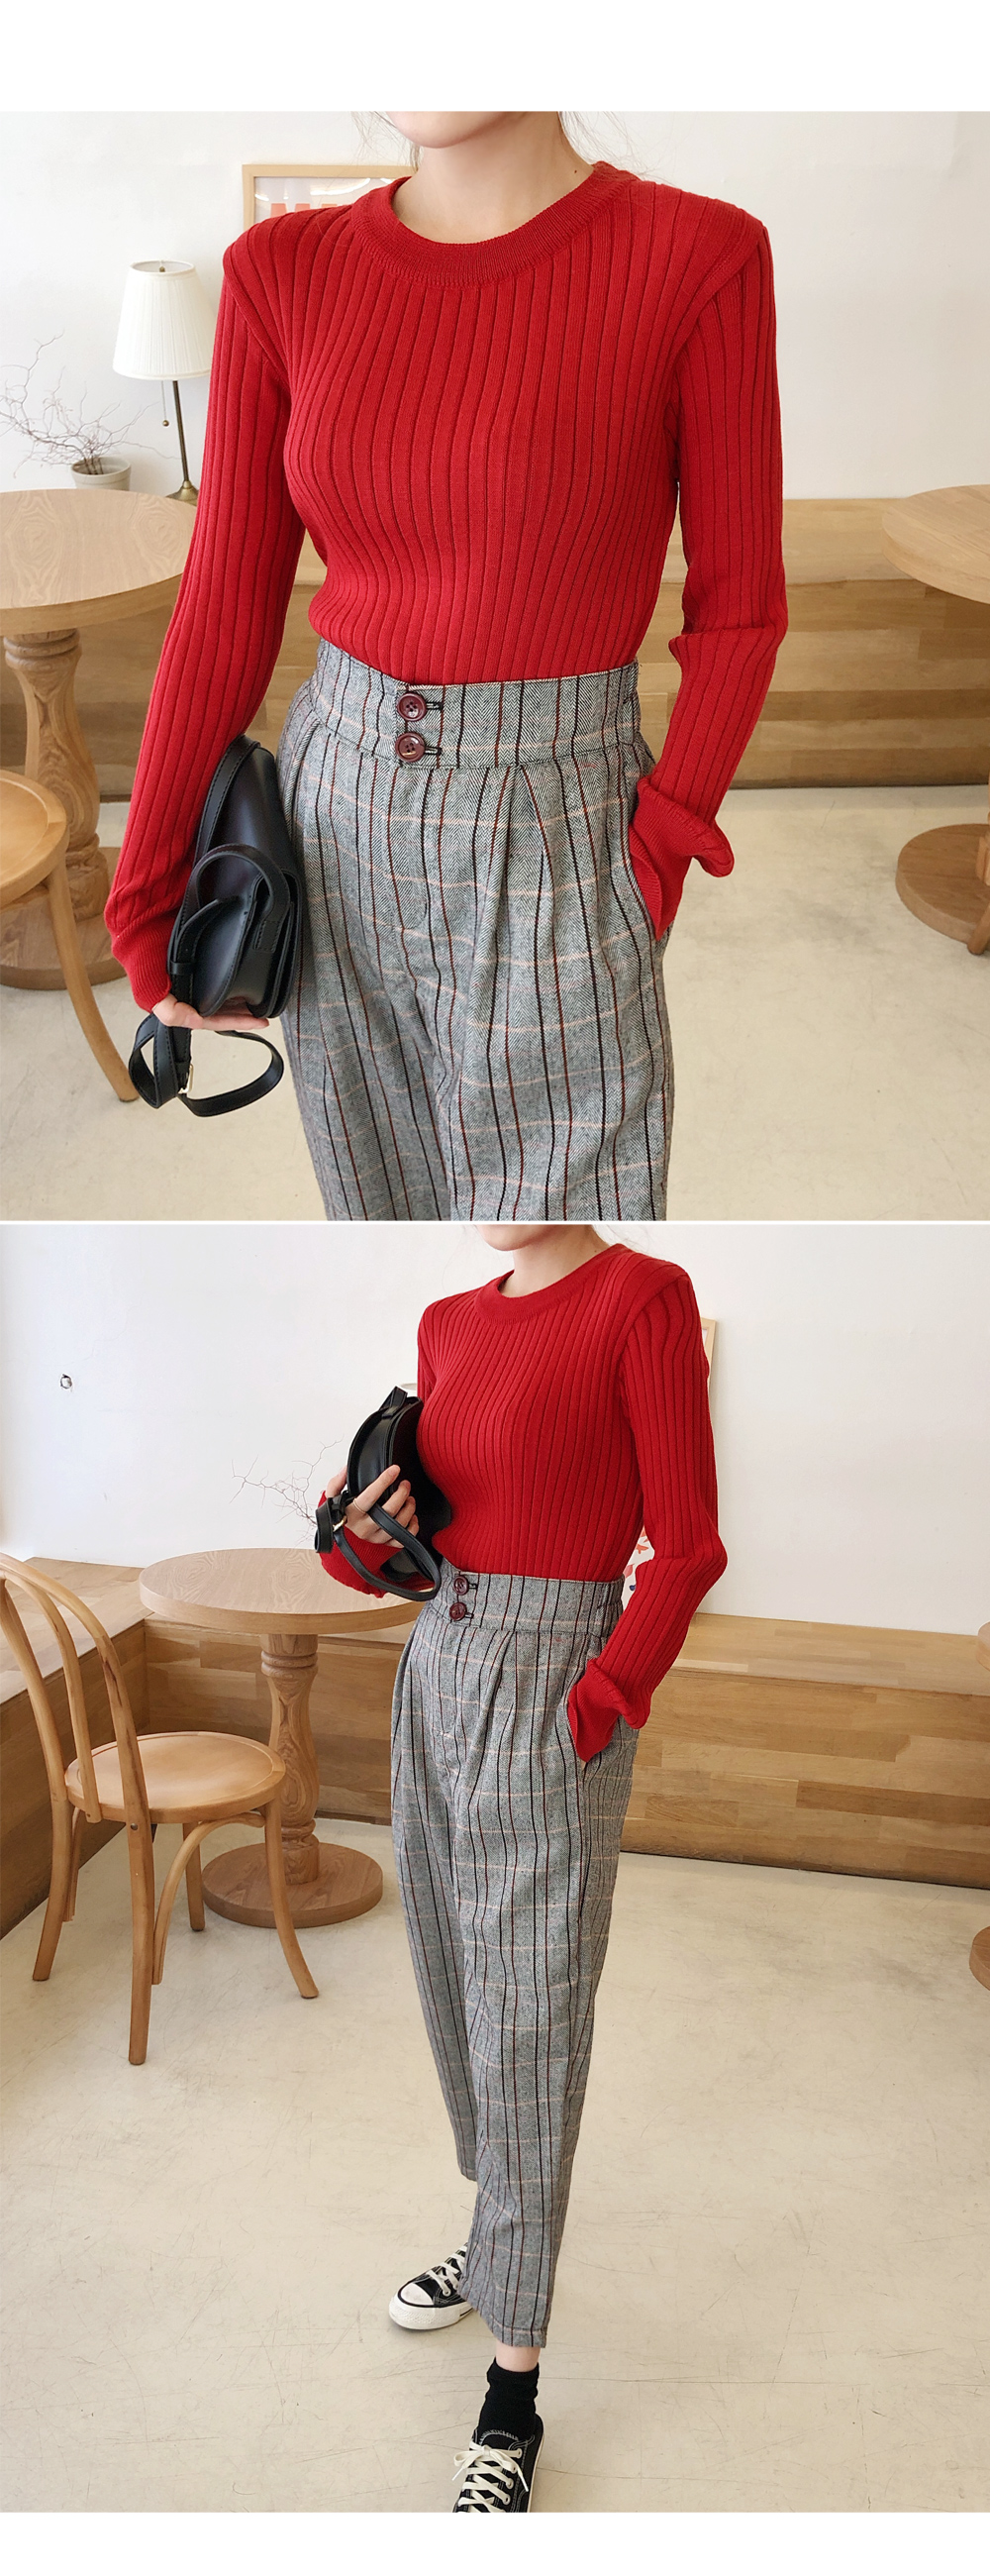 Simple Corrugated Round Knit